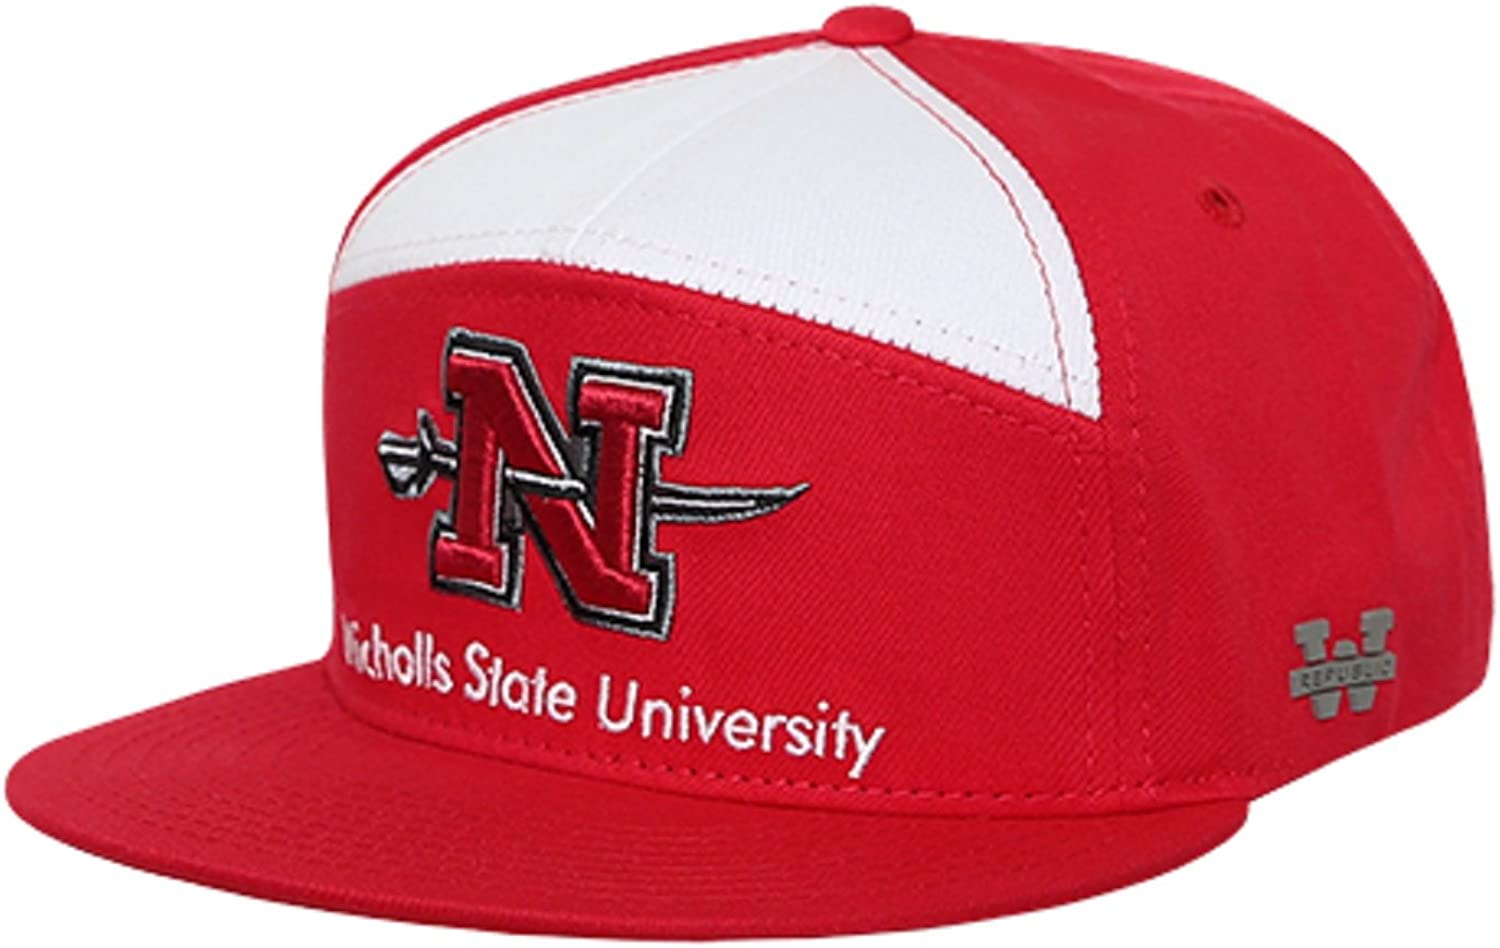 NCAA Nicholls State University Colonels College Fitted Caps Hats Red